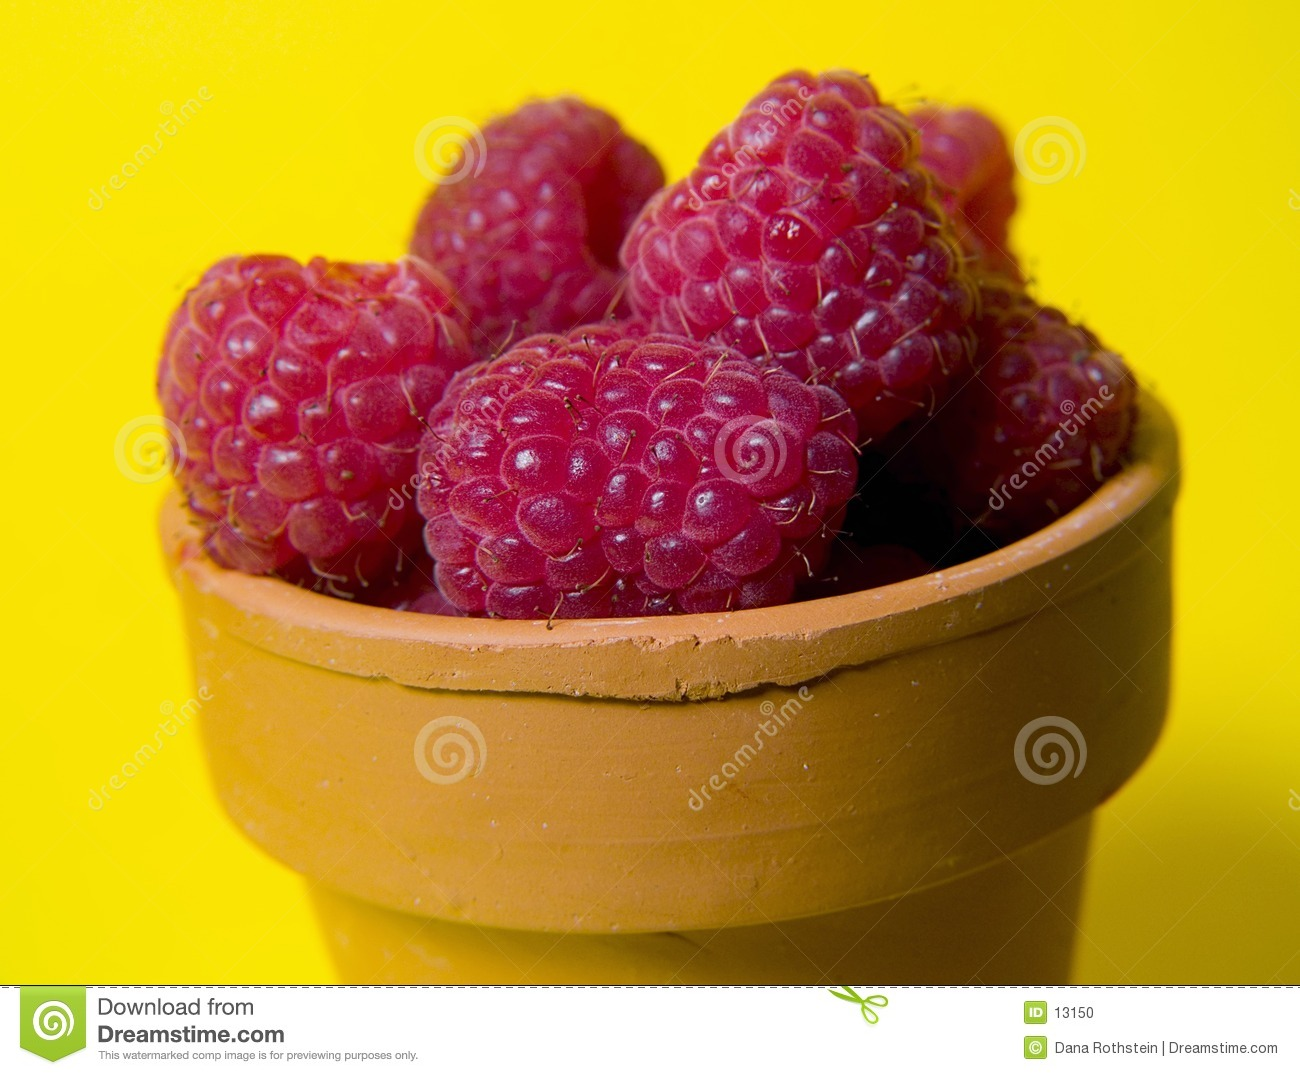 Rasberries no potenciômetro